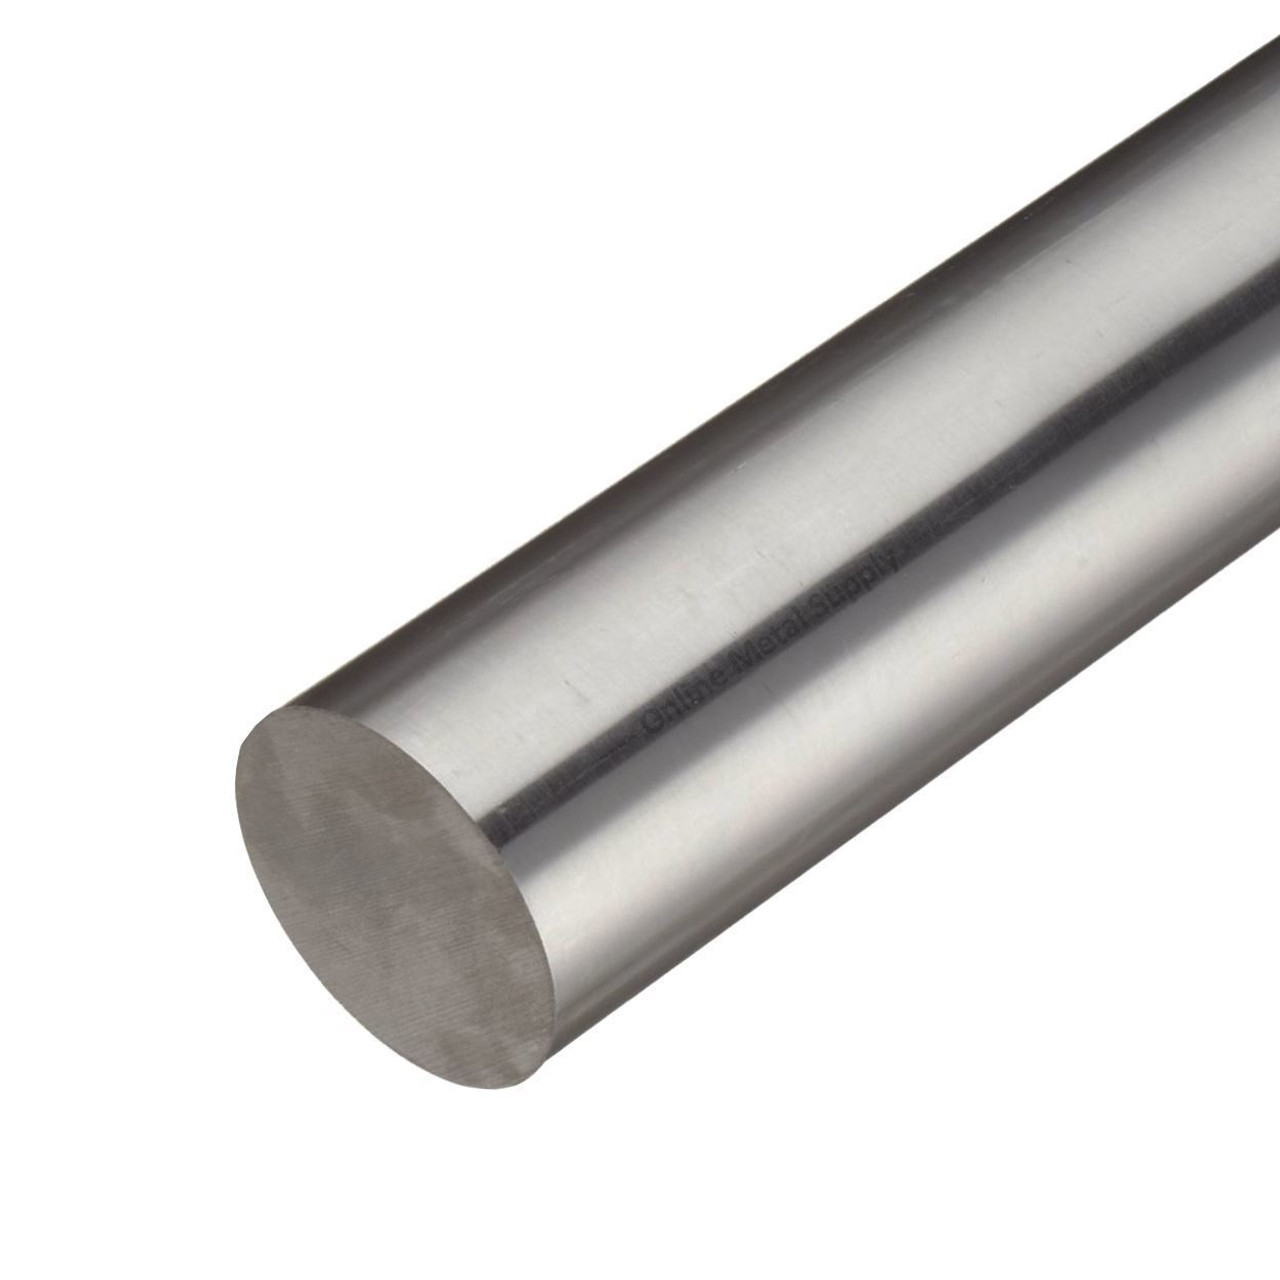 3.000 (3 inch) x 6 inches, 17-4 Cond A CF Stainless Steel Round Rod